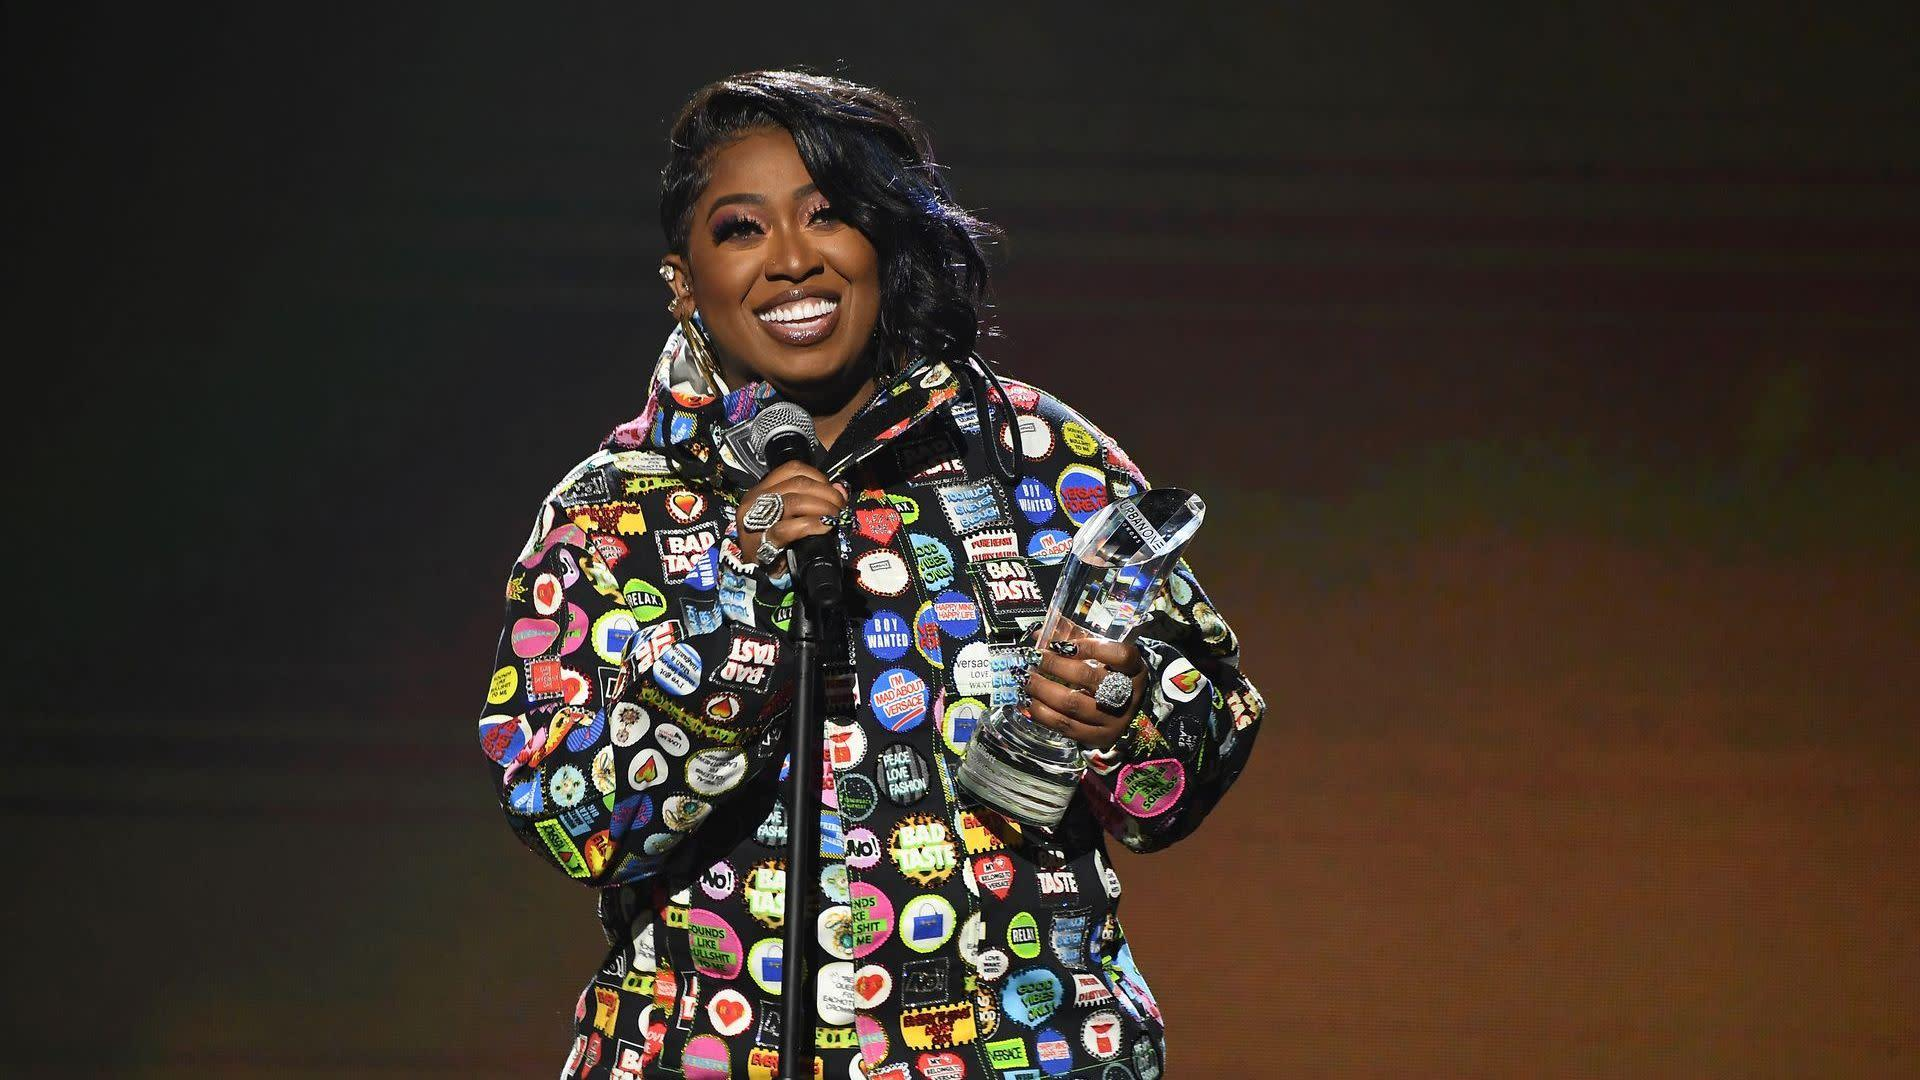 Missy Elliott Says She Would Collab With 21 Savage After Hearing His Vocals For Keyshia Cole and Ashanti's 'Verzuz' - Yahoo Entertainment